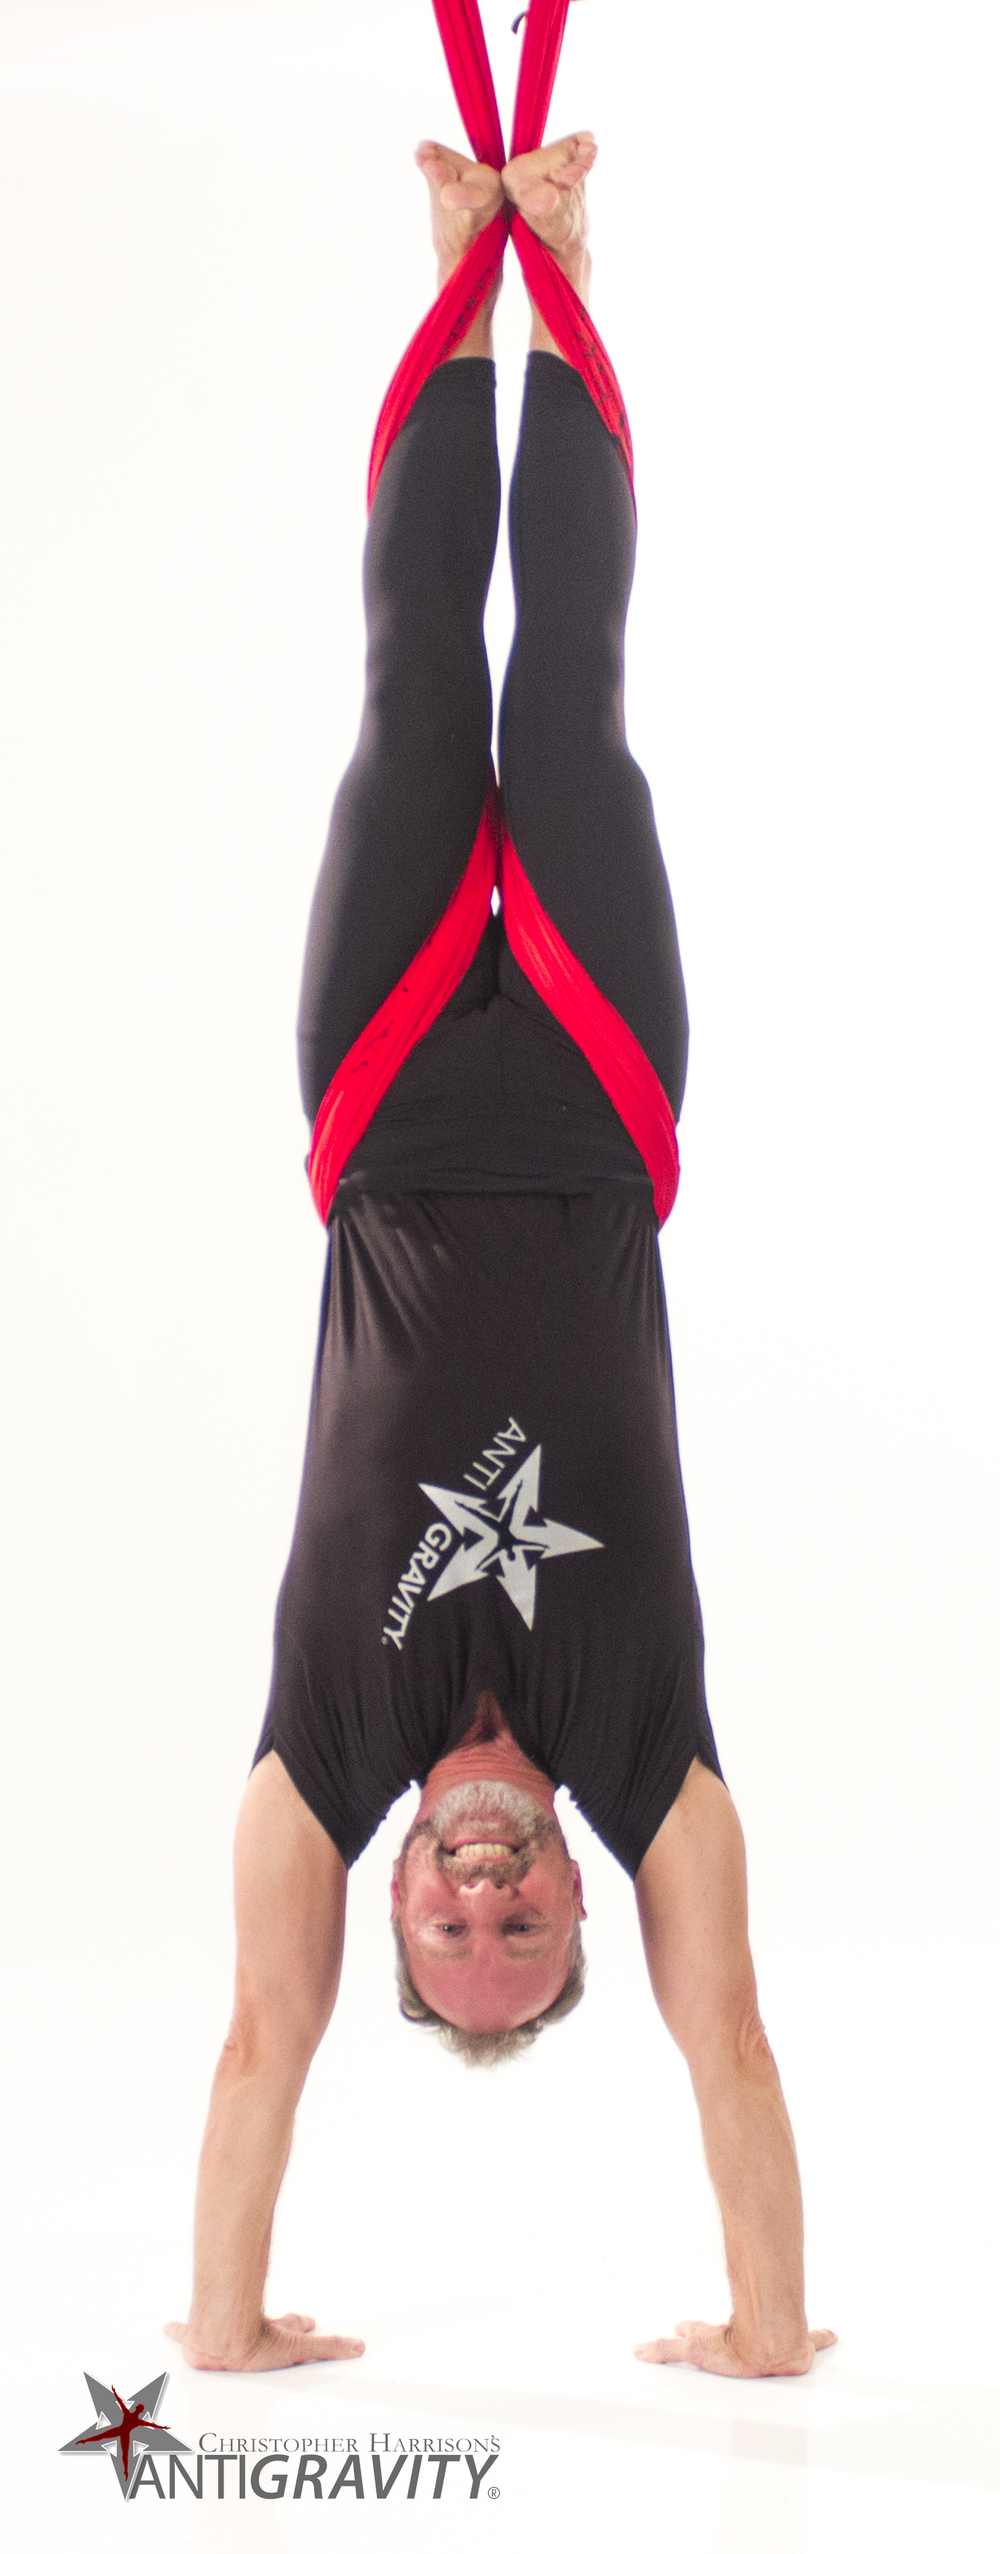 AntiGravity® Suspension Fitness